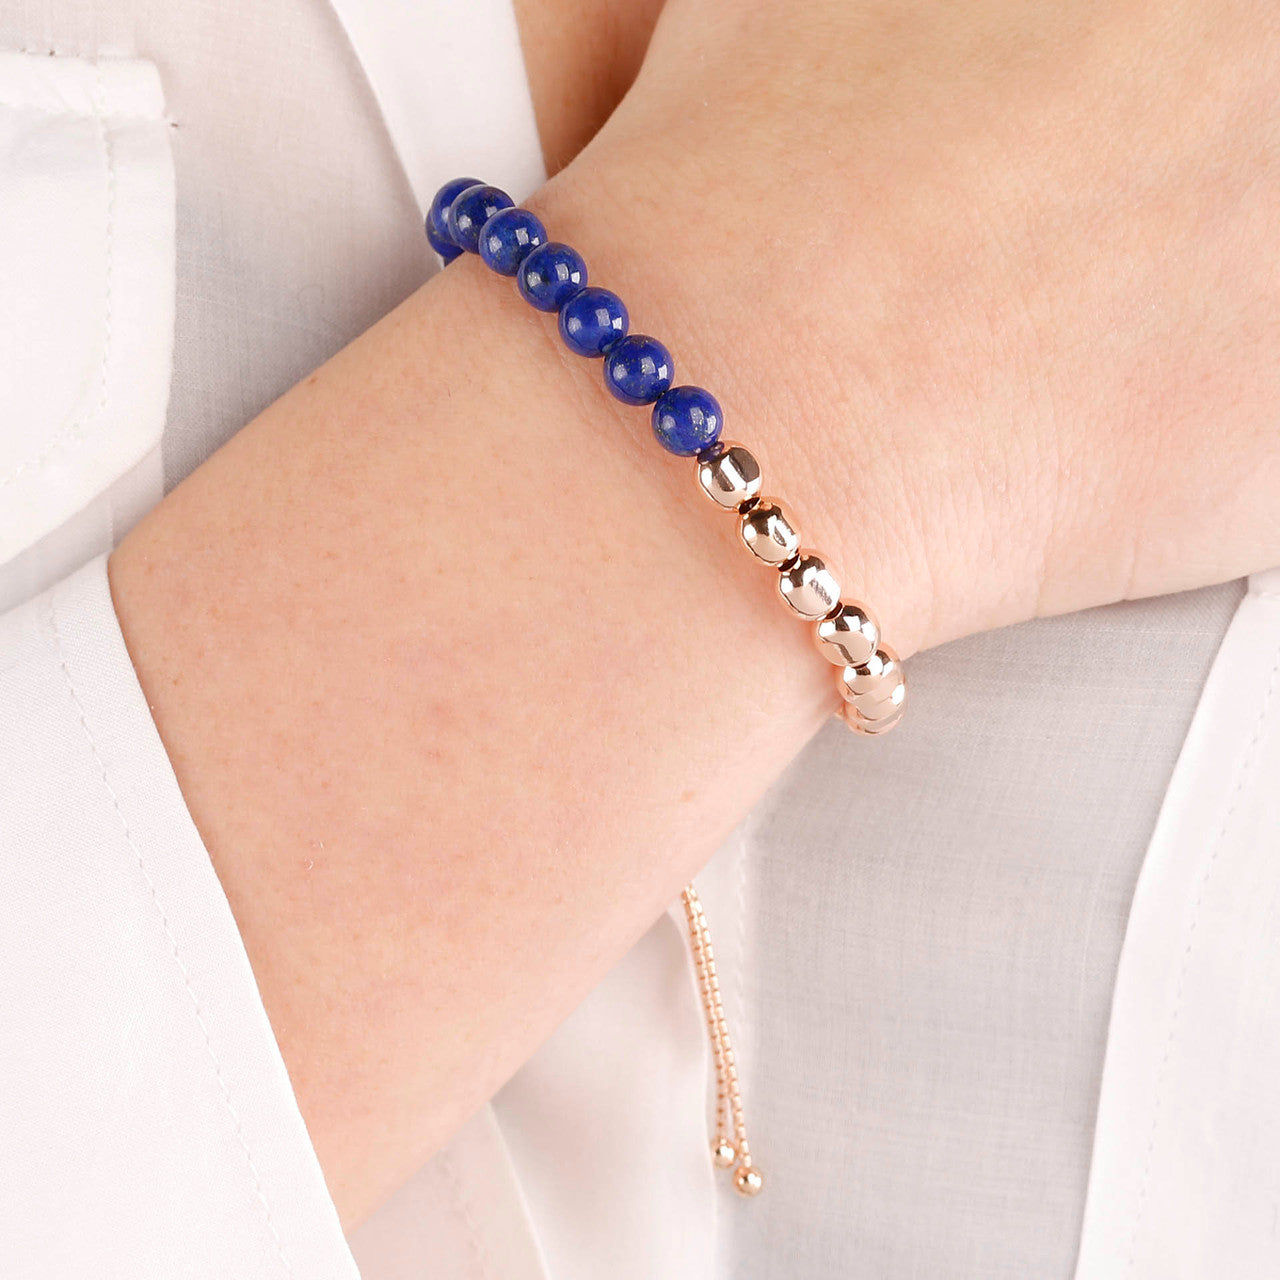 worn Beaded Friendship Bracelet with Gemstones LAPIS